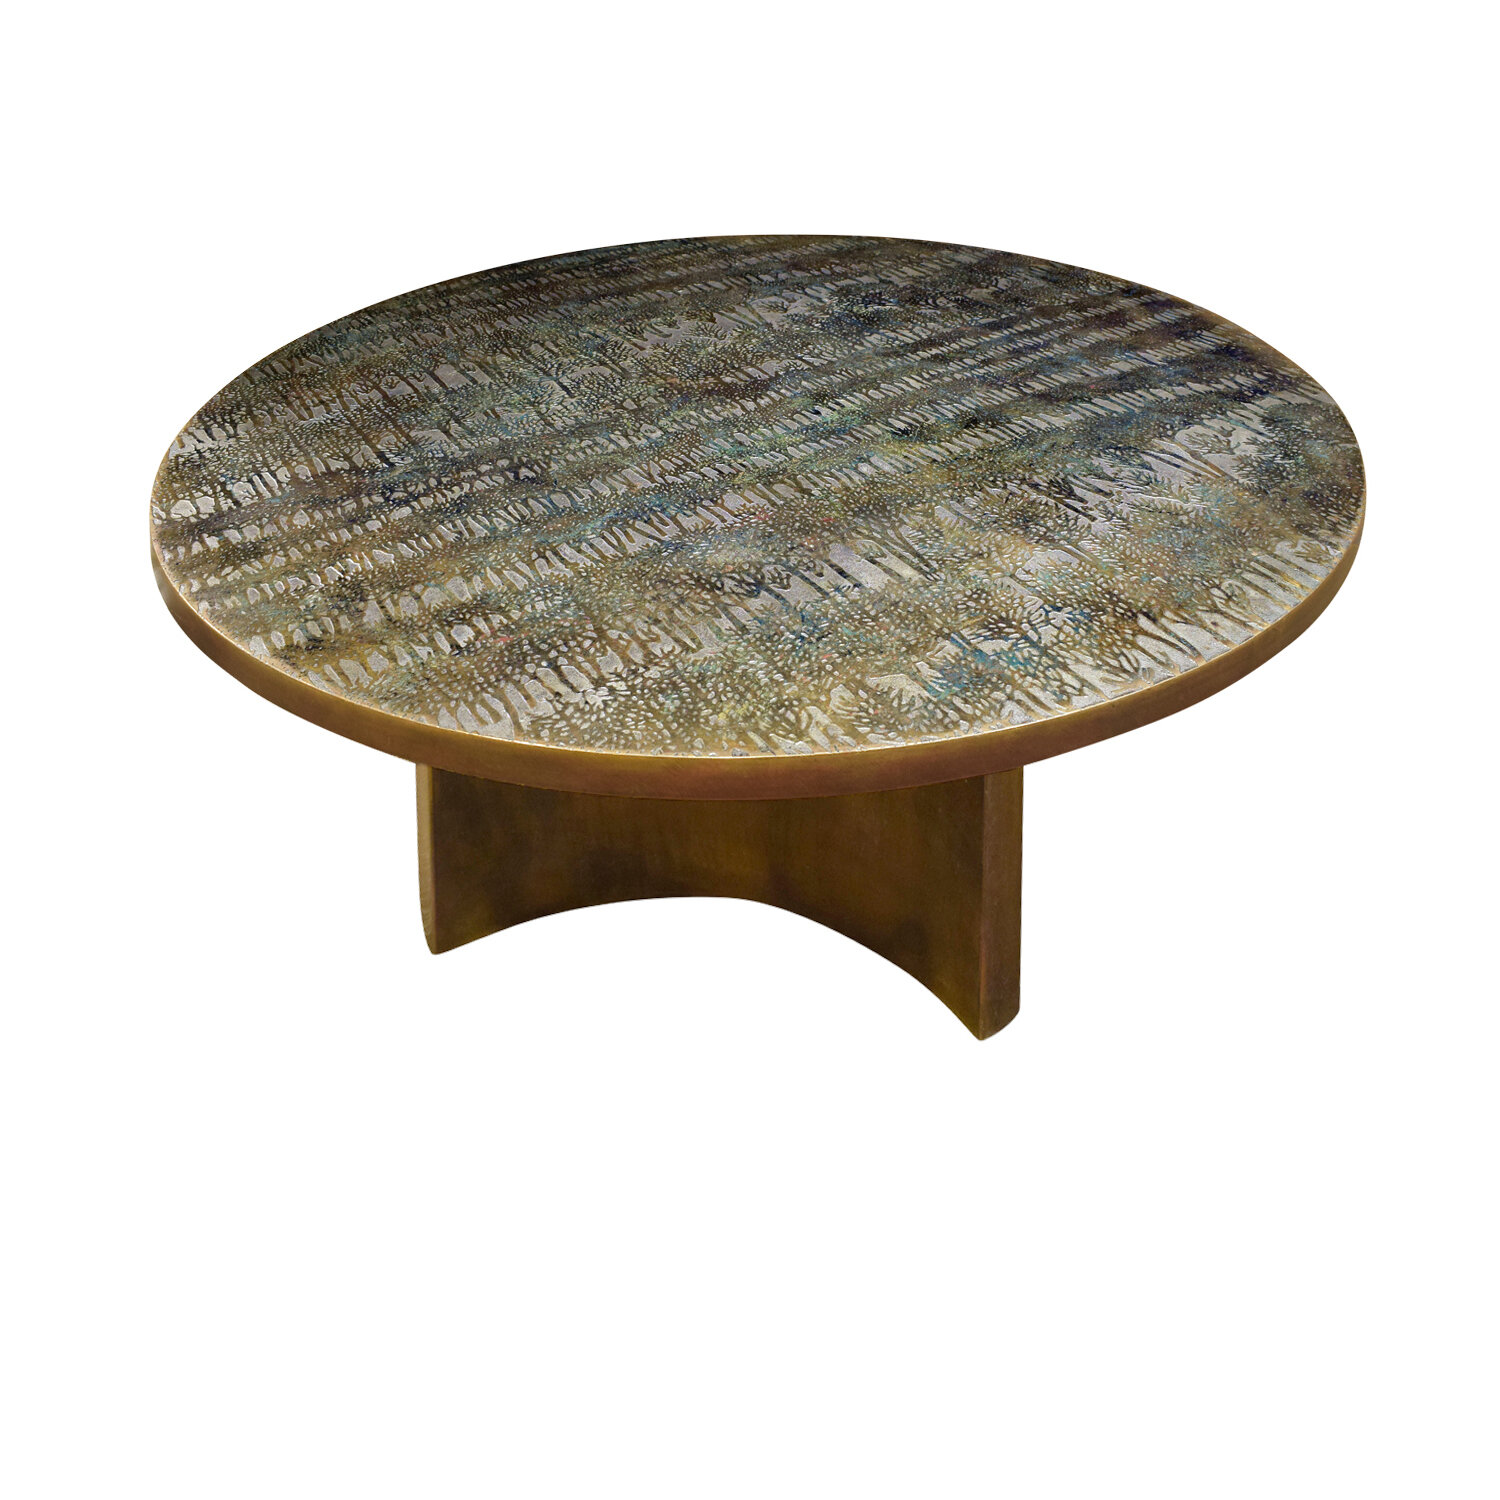 LaVerne 280 Eternal Forest coffeetable466 angl.jpg